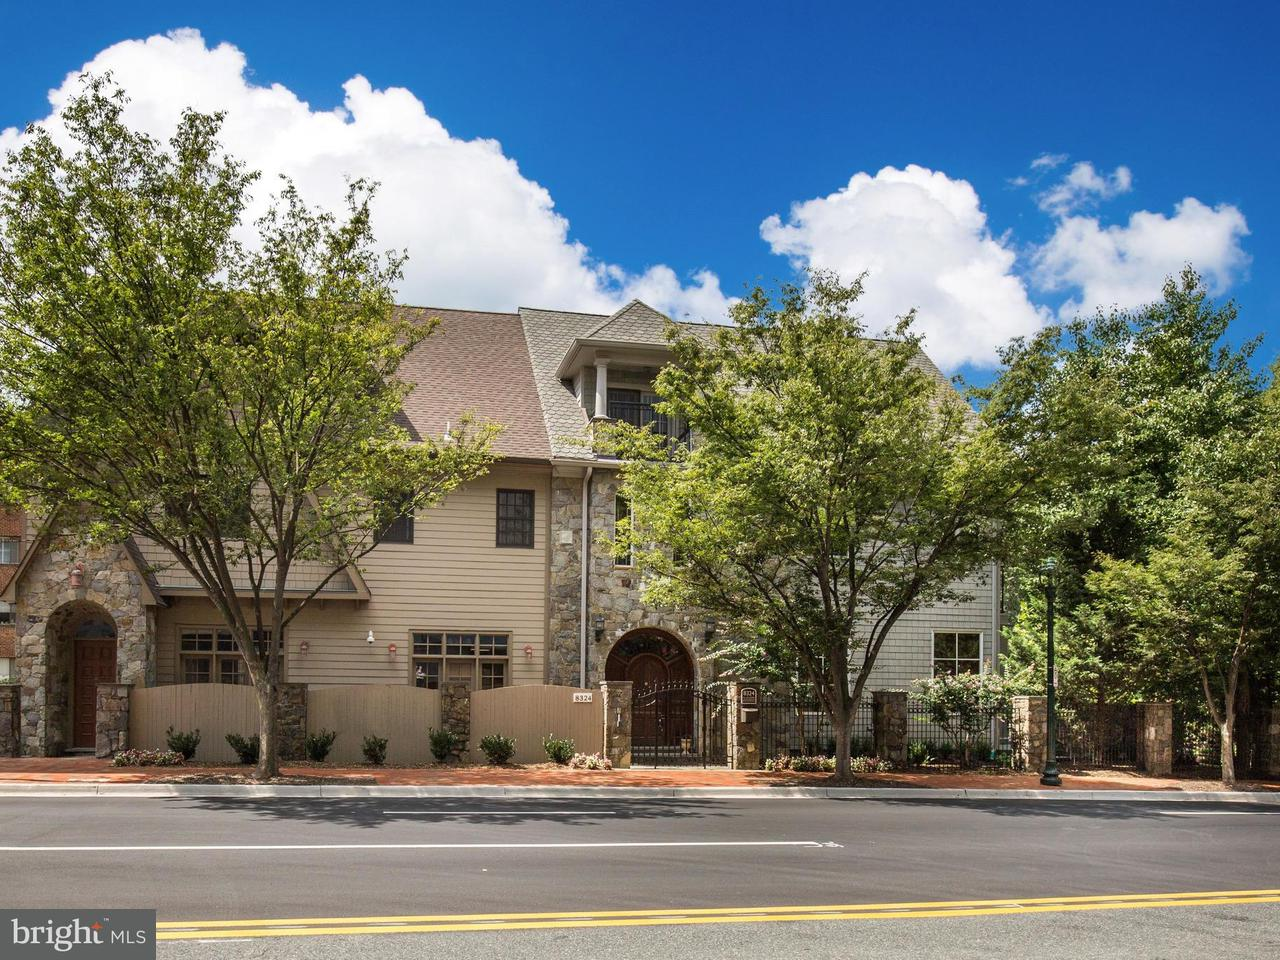 Commercial for Sale at 8324 WOODMONT AVE #1 8324 WOODMONT AVE #1 Bethesda, Maryland 20814 United States